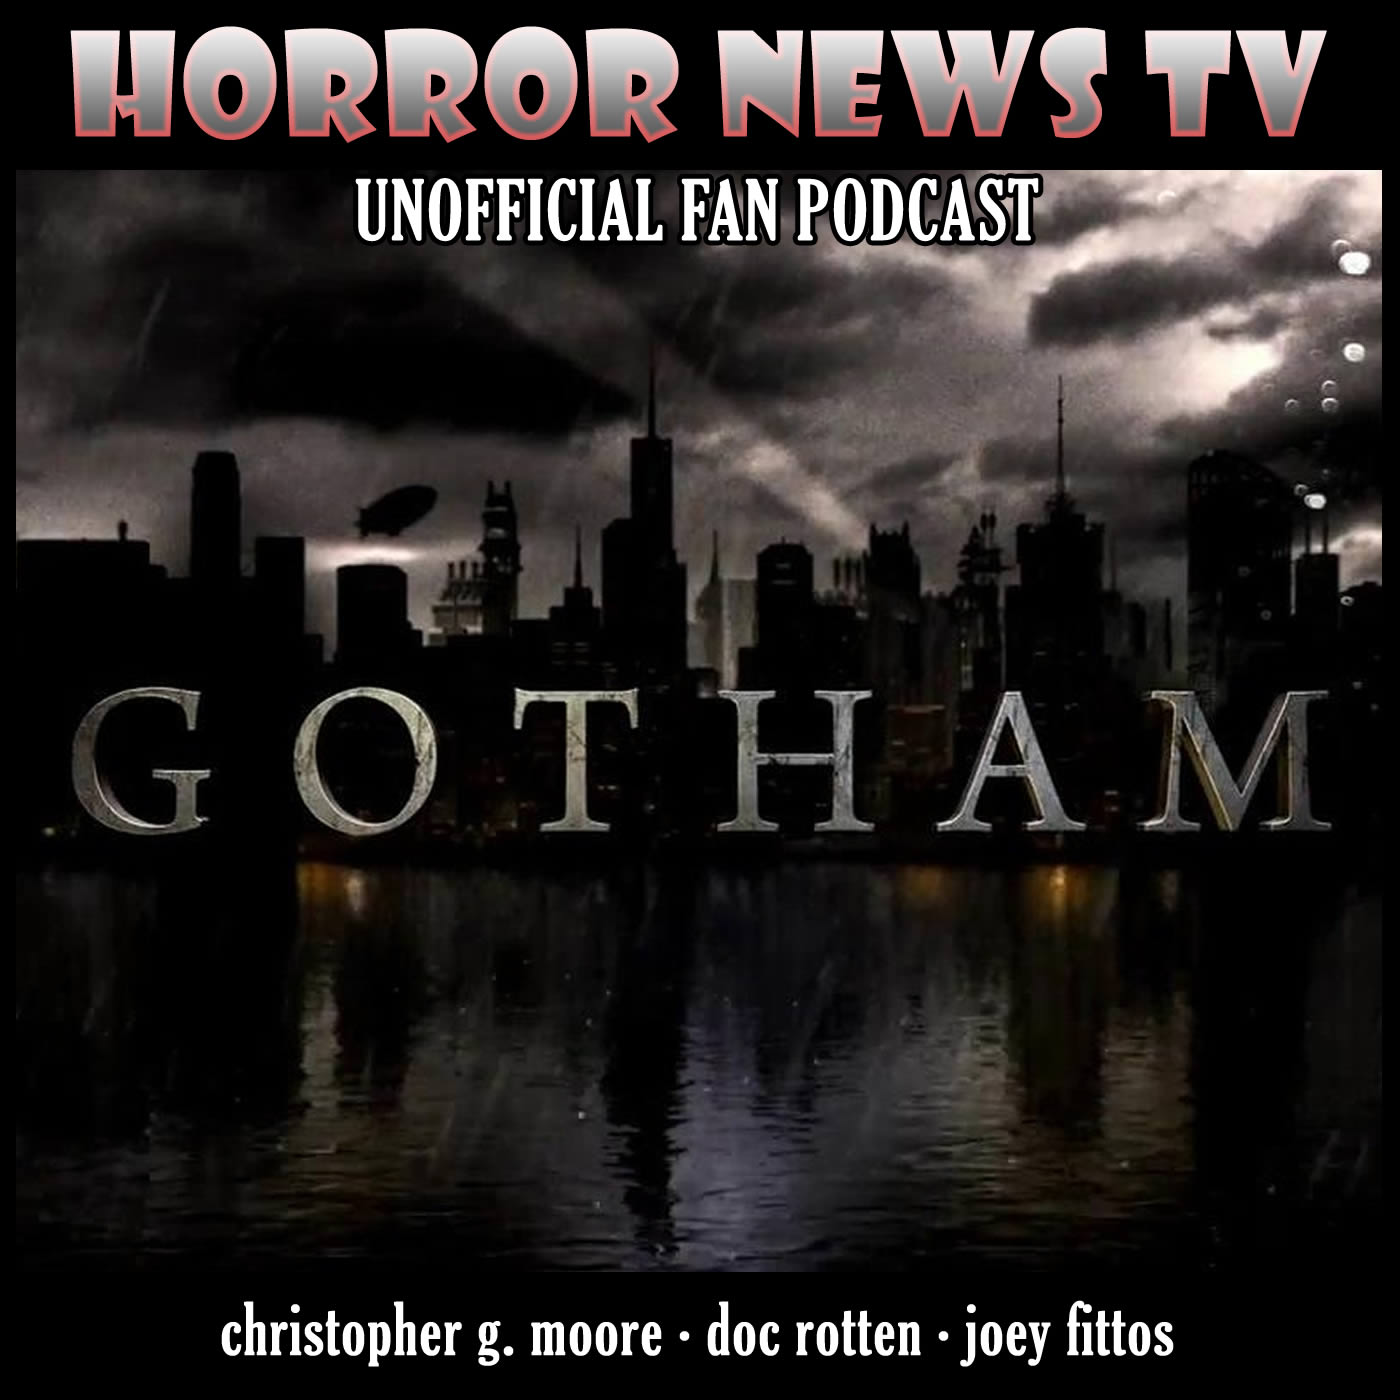 Gotham Fan Podcast on Horror News TV